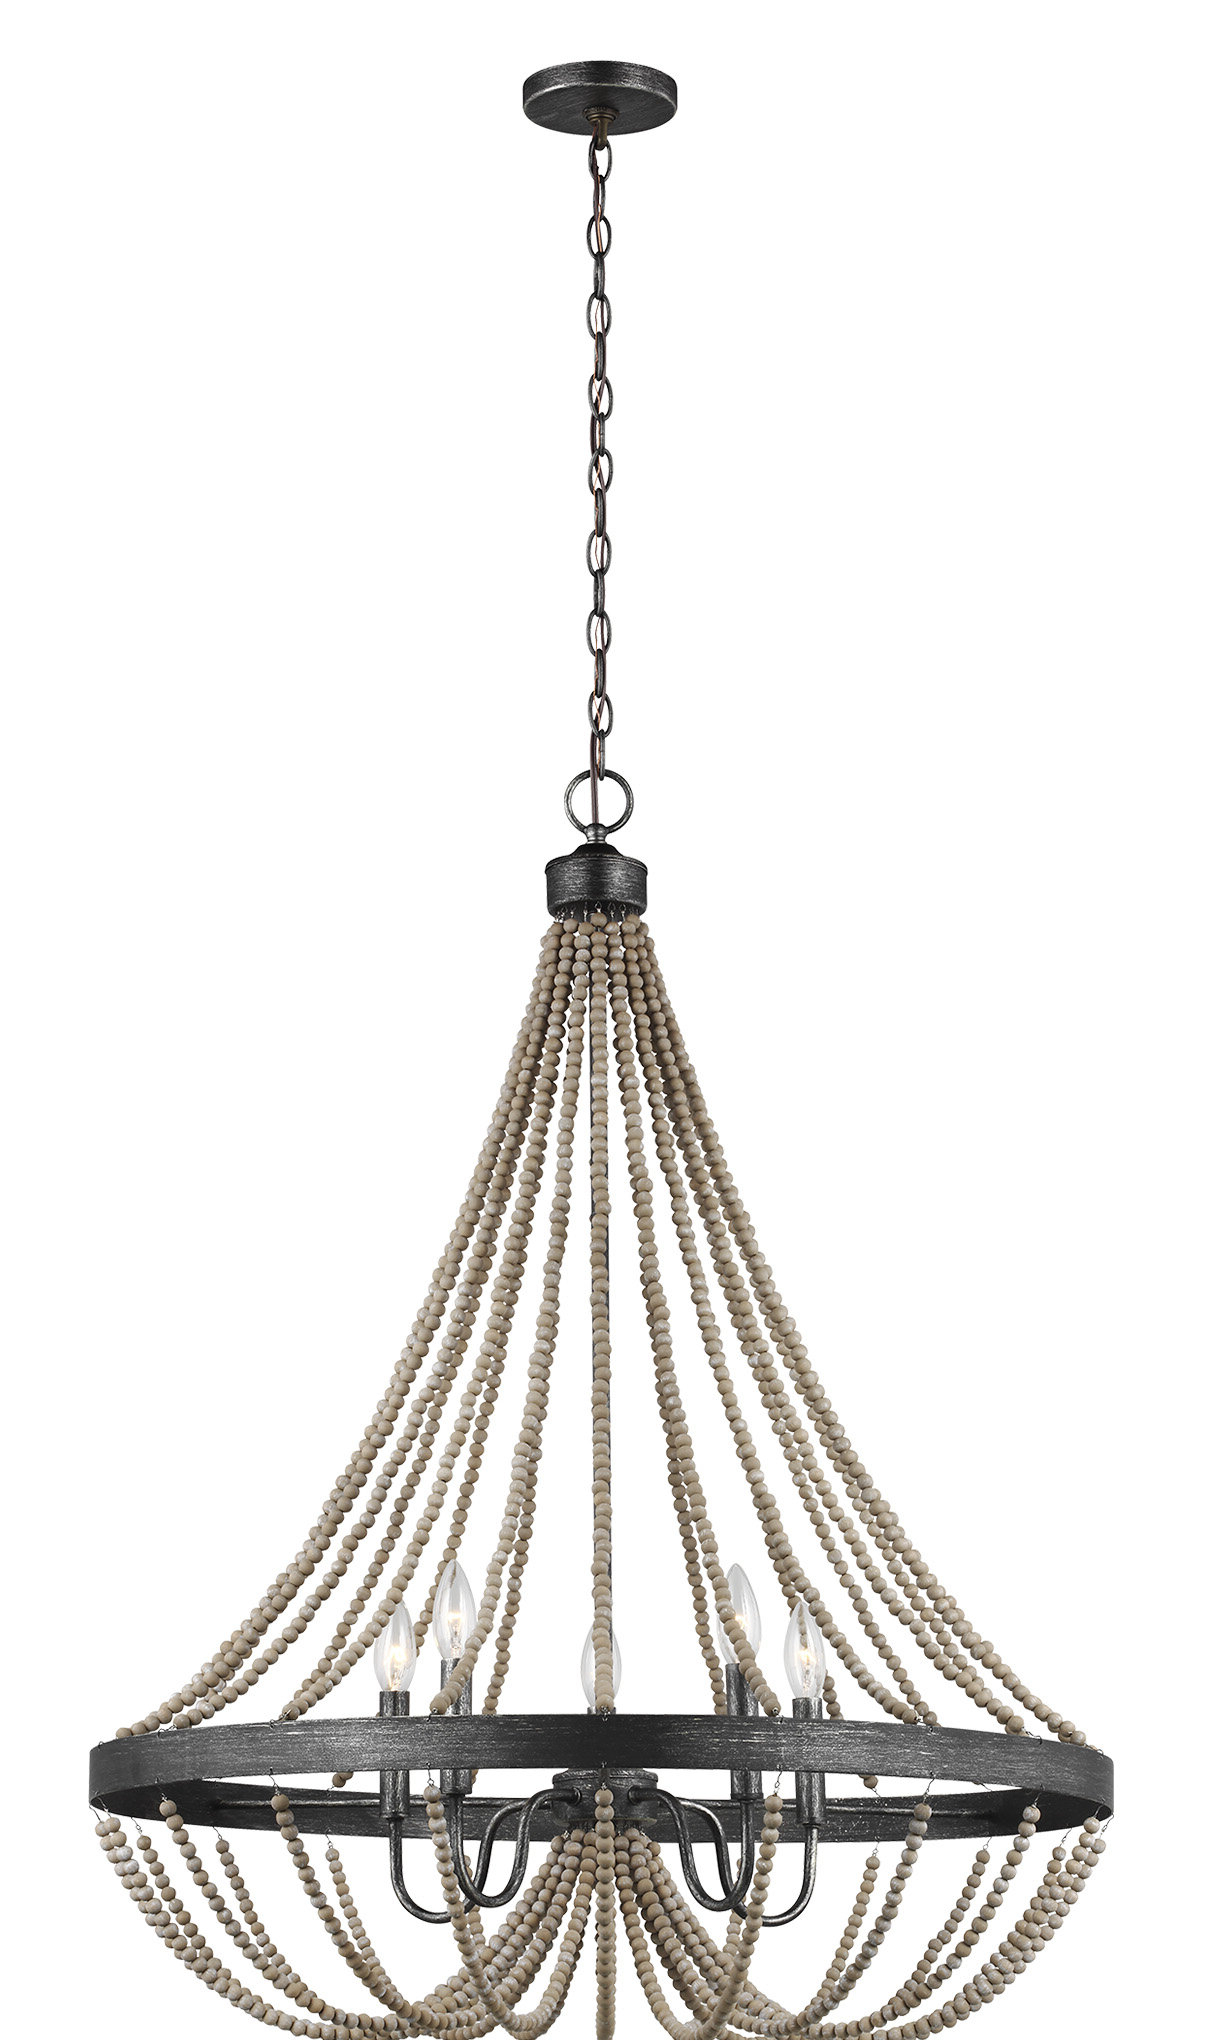 New Braunfels 5 Light Empire Chandelier Regarding Famous Ladonna 5 Light Novelty Chandeliers (View 14 of 20)